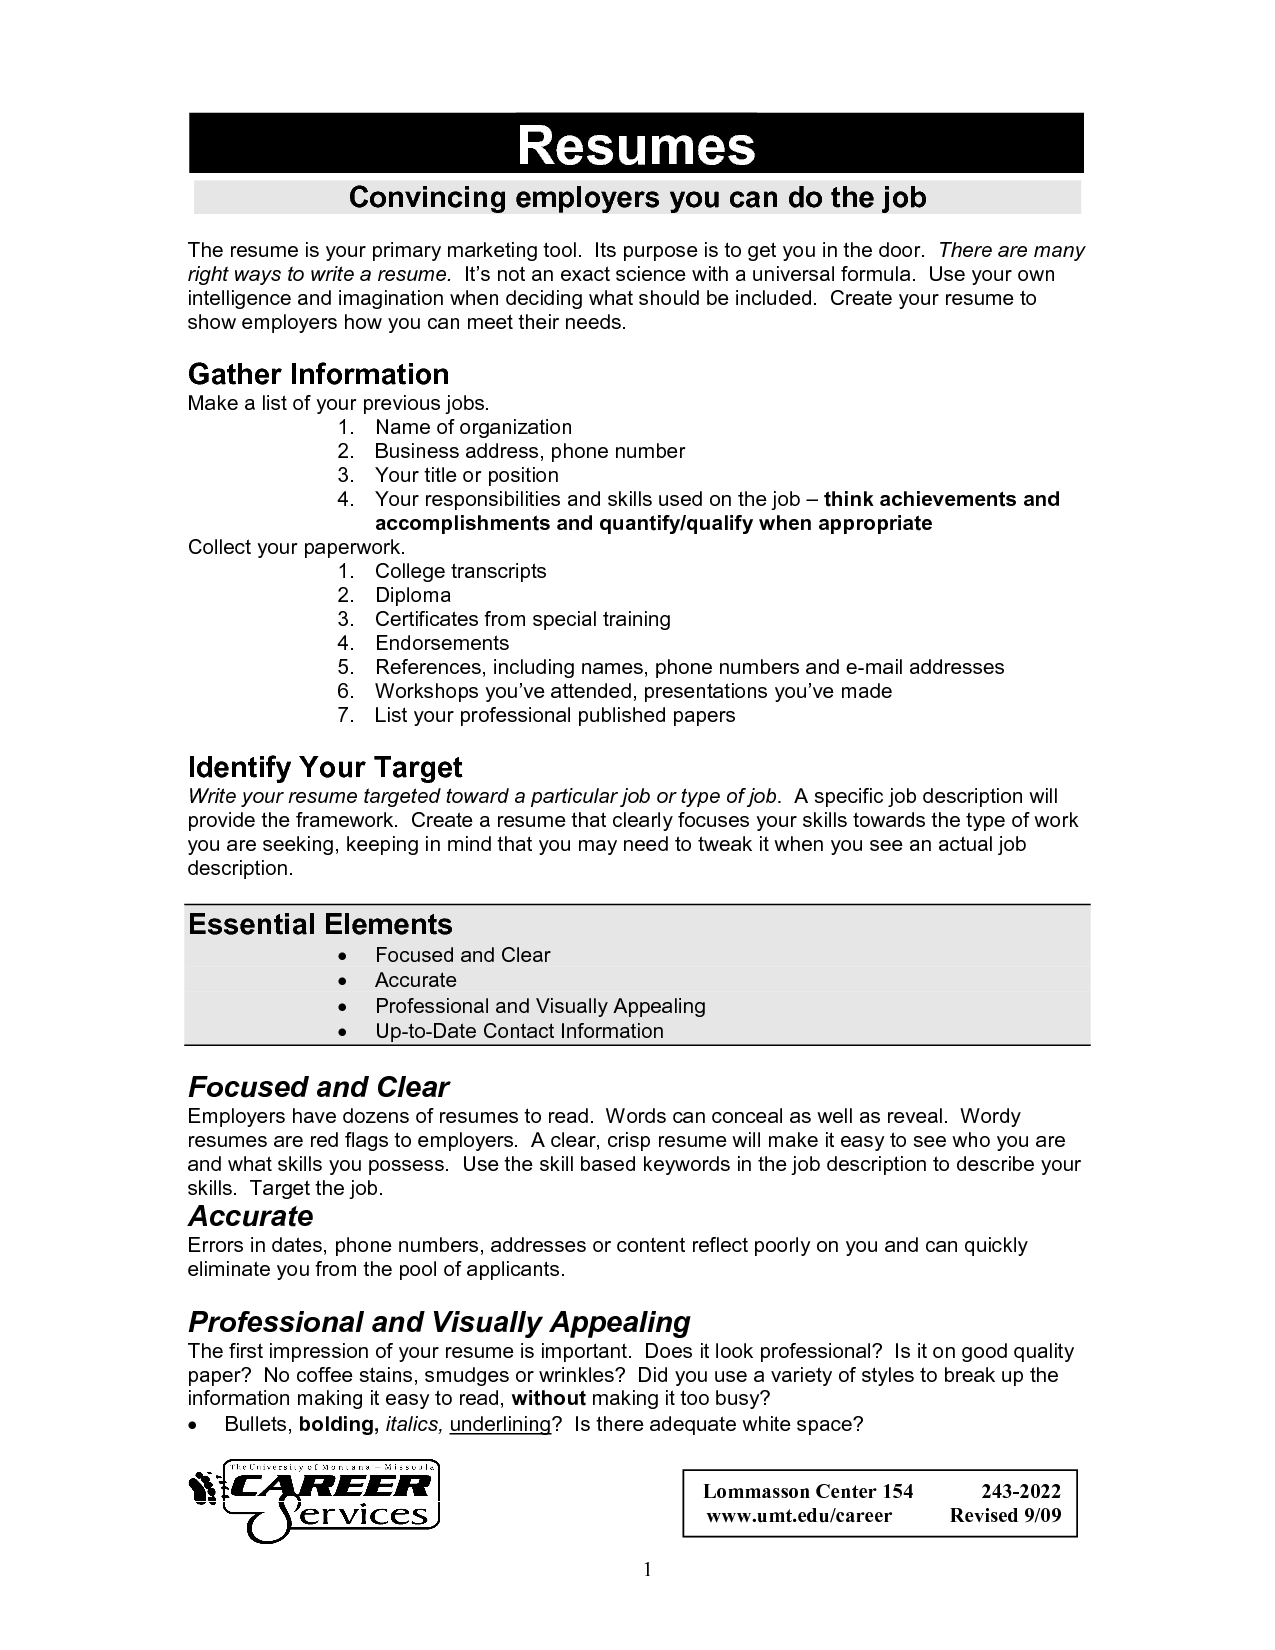 Resume examples for it jobs gerhard leixl resume examples for it jobs altavistaventures Gallery